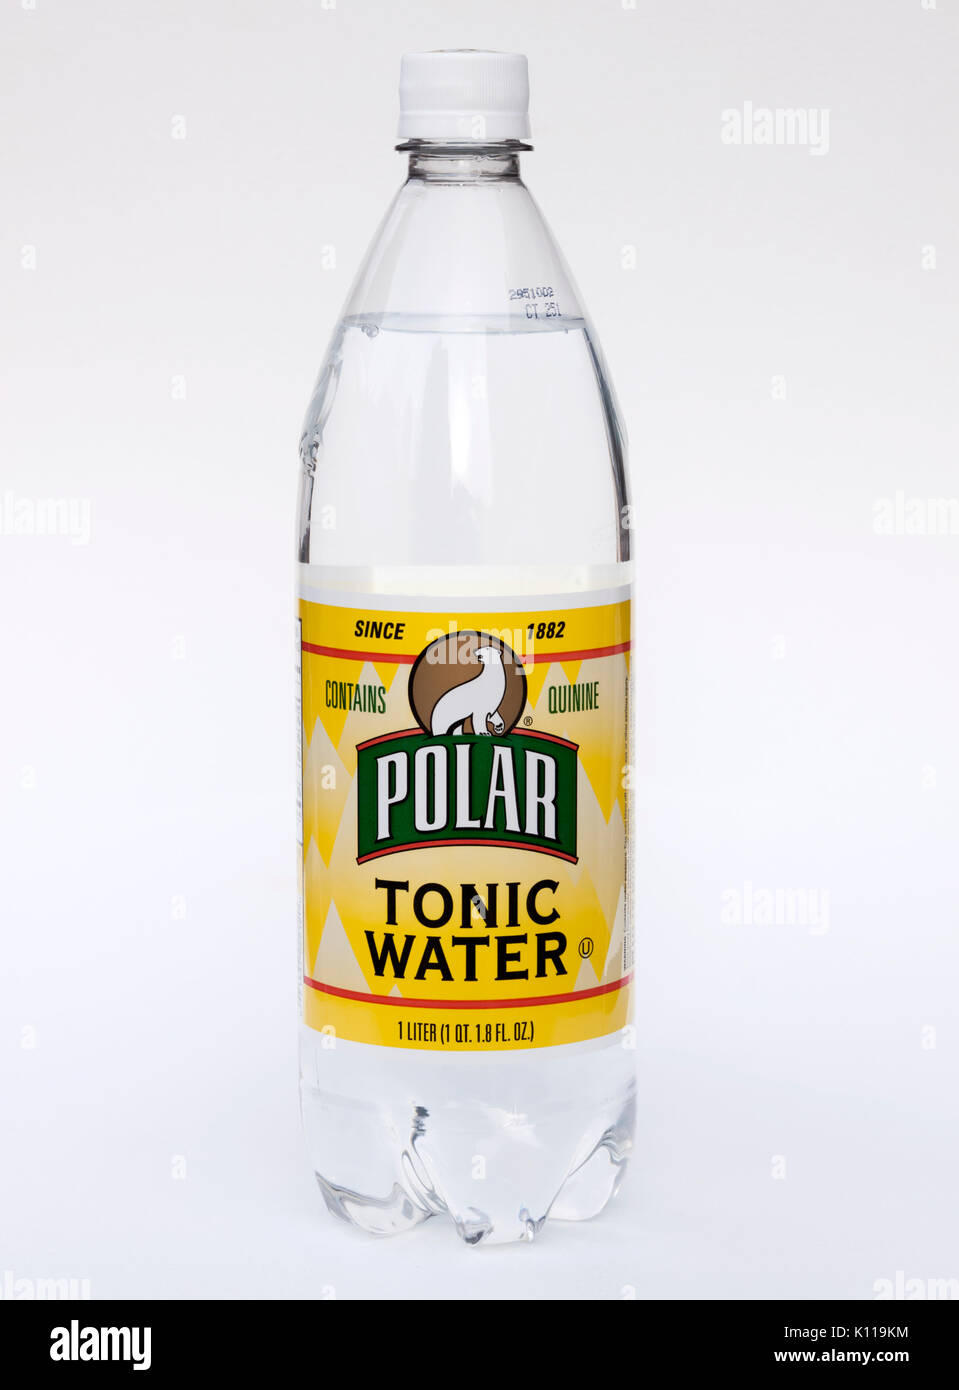 Bottle of Polar Tonic Water  Contains quinine which helps